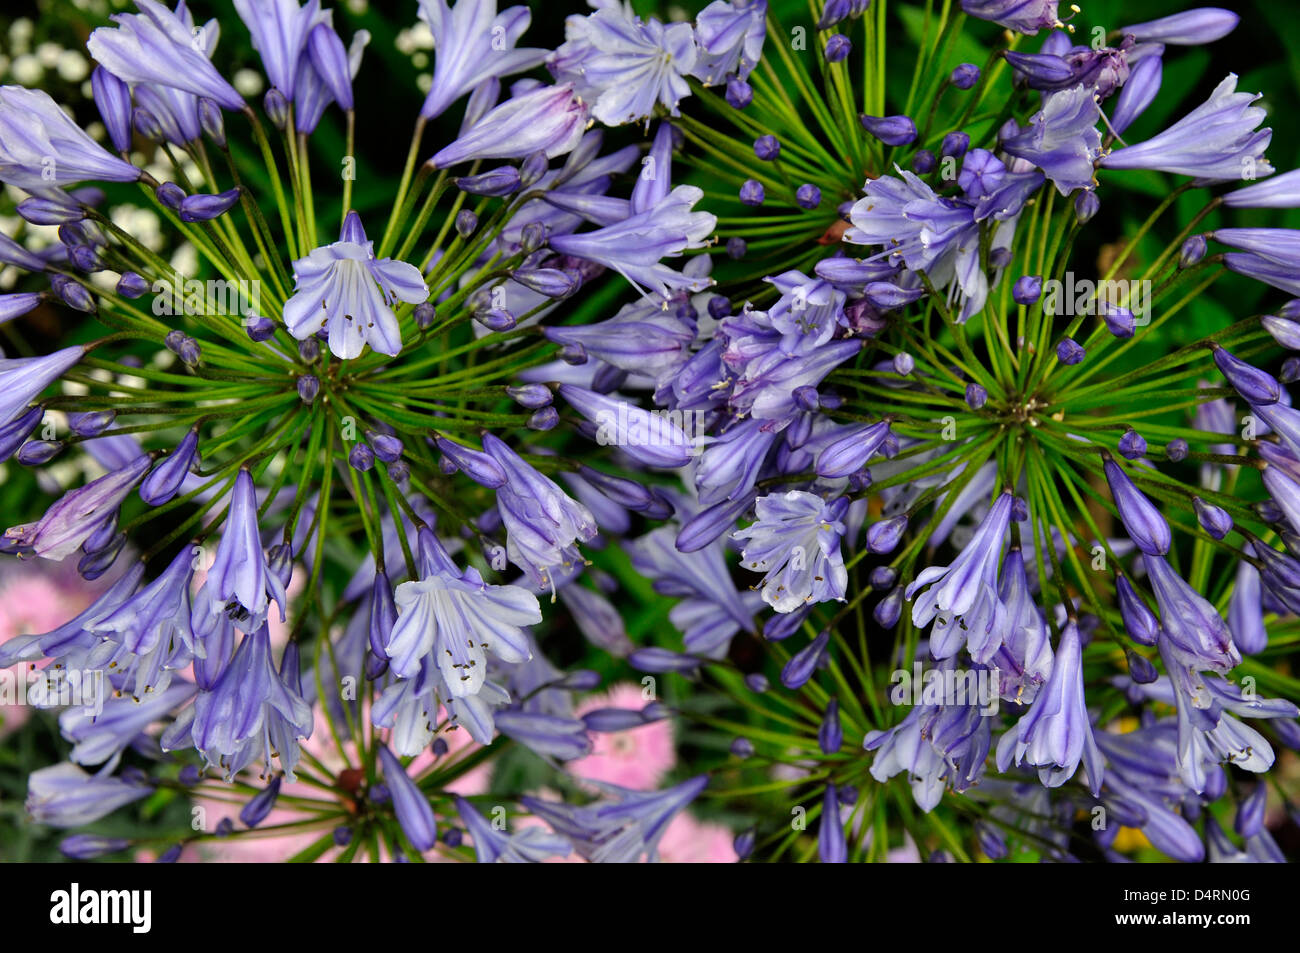 Agapanthus or African Lily. Dorset, UK August 2010 - Stock Image